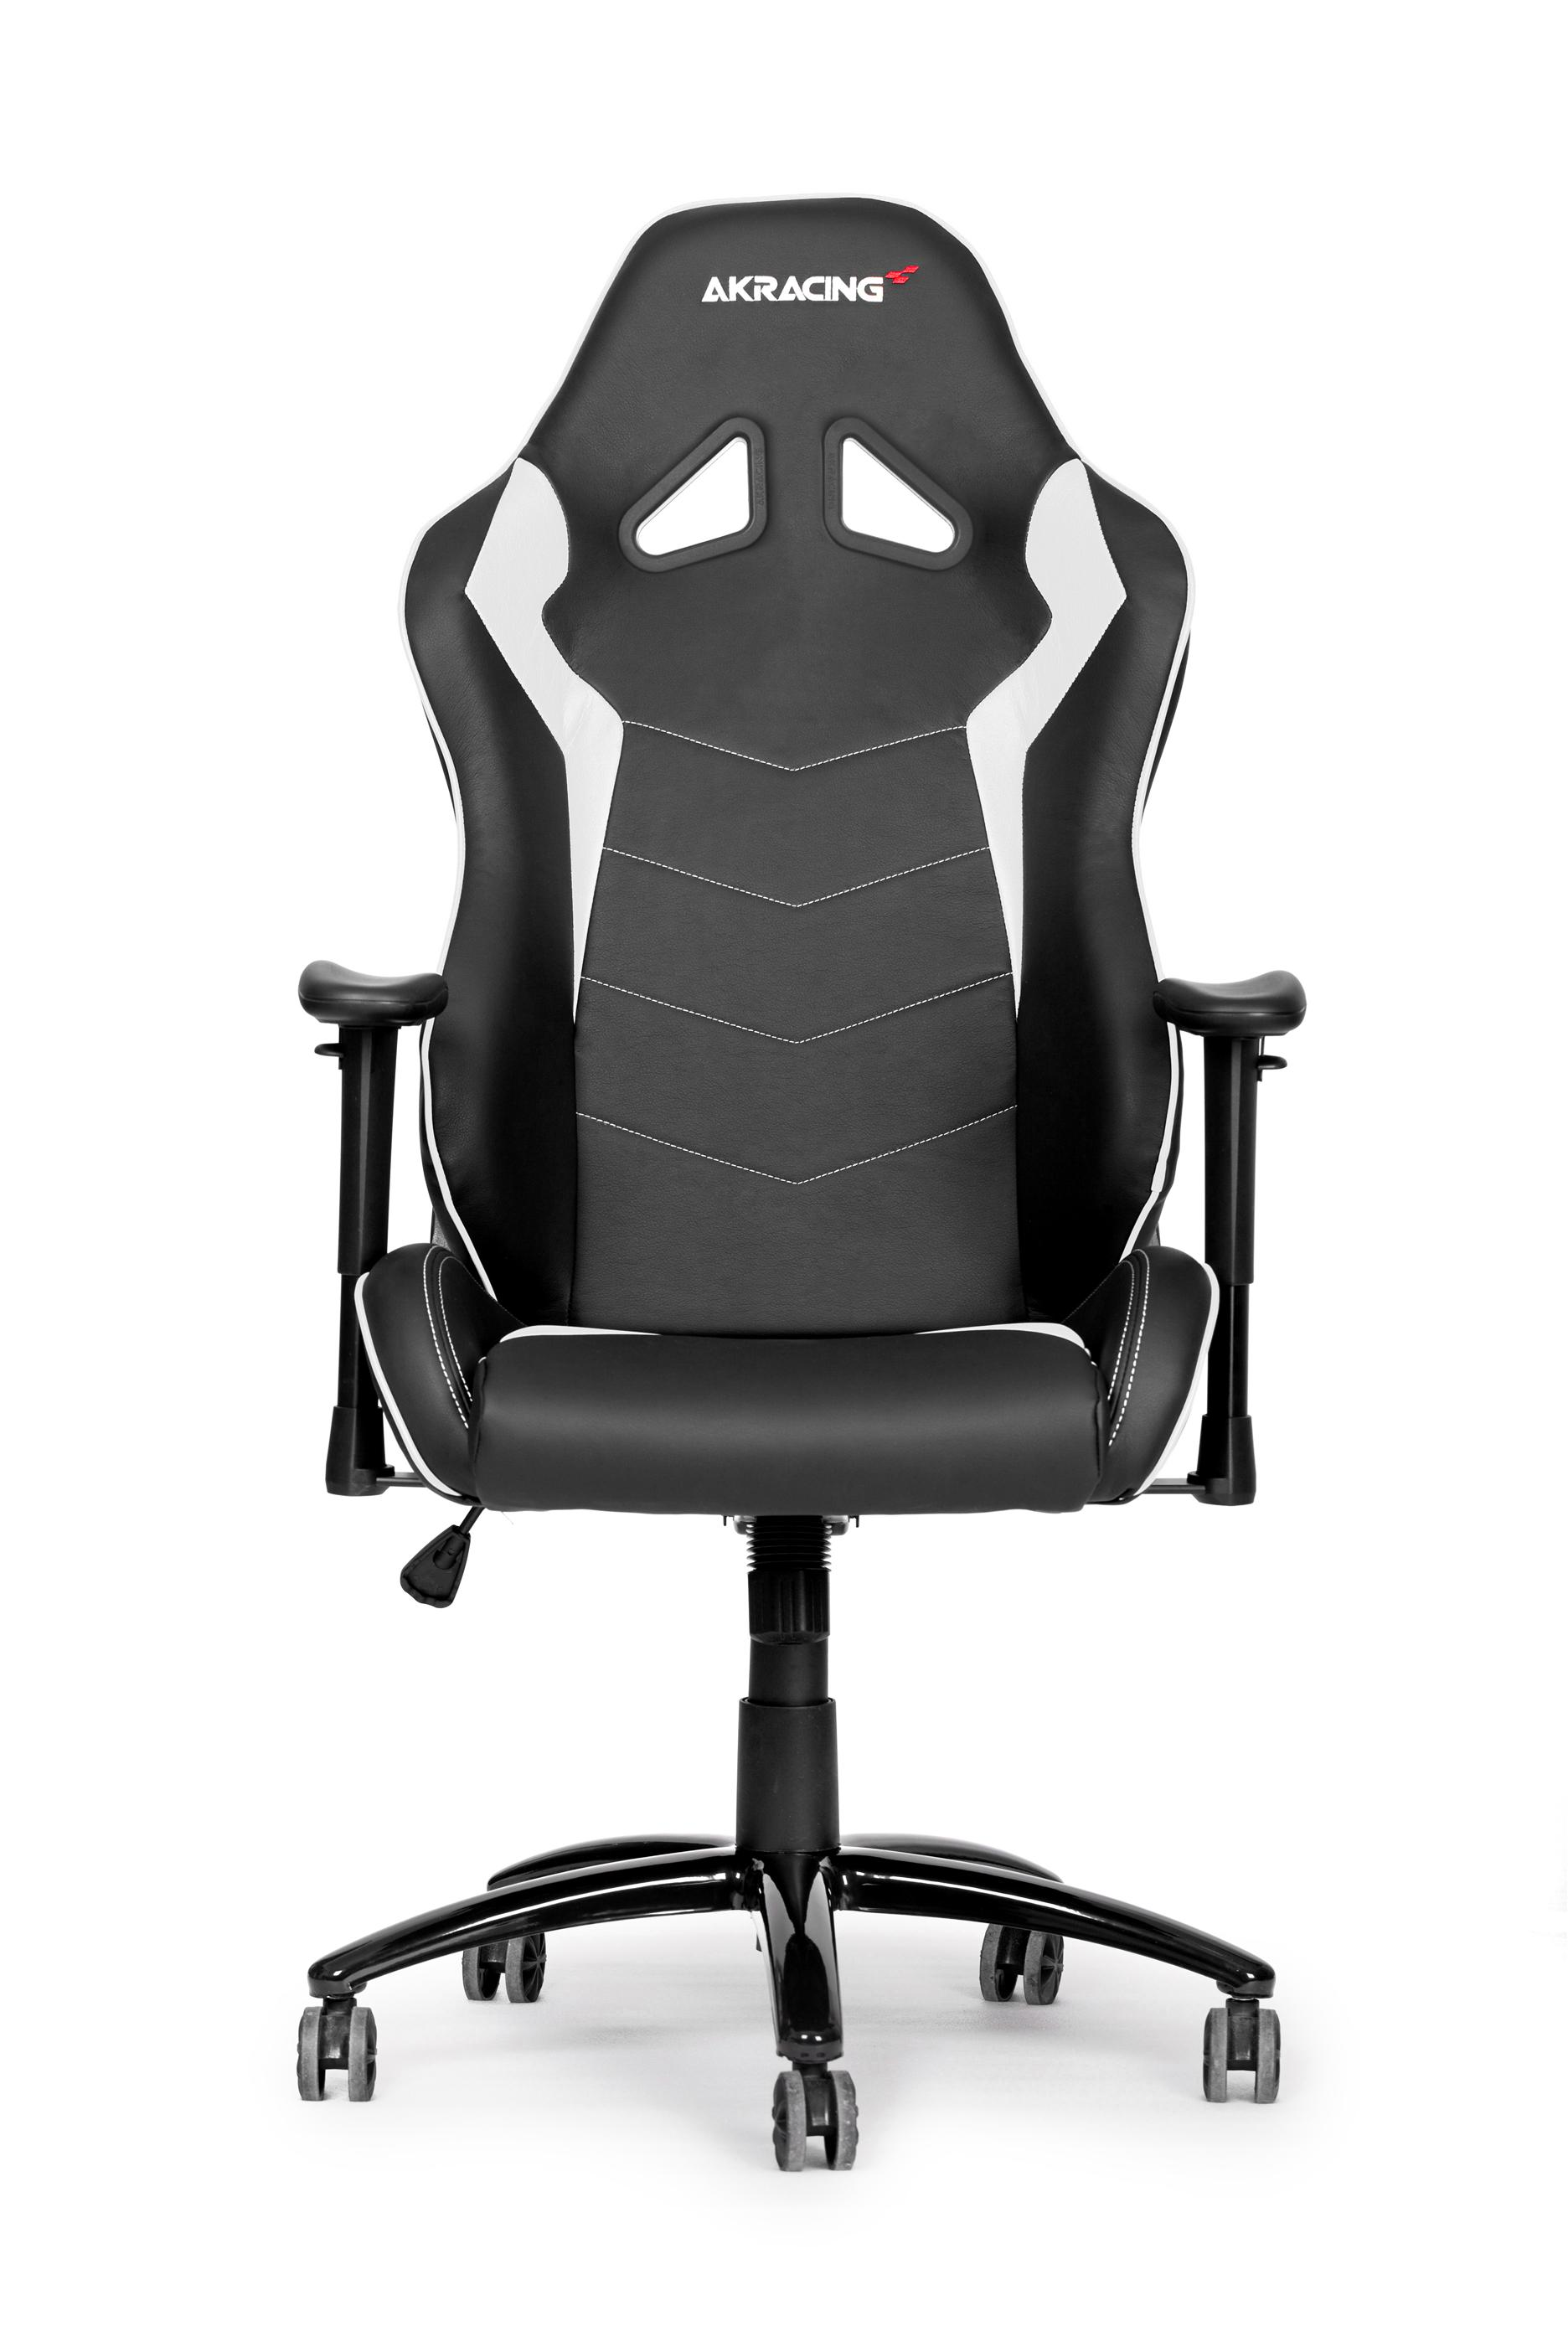 AKRACING OCTANE SERIES GAMING CHAIR BLACK+WHITE PU LEATHER INSTOCK